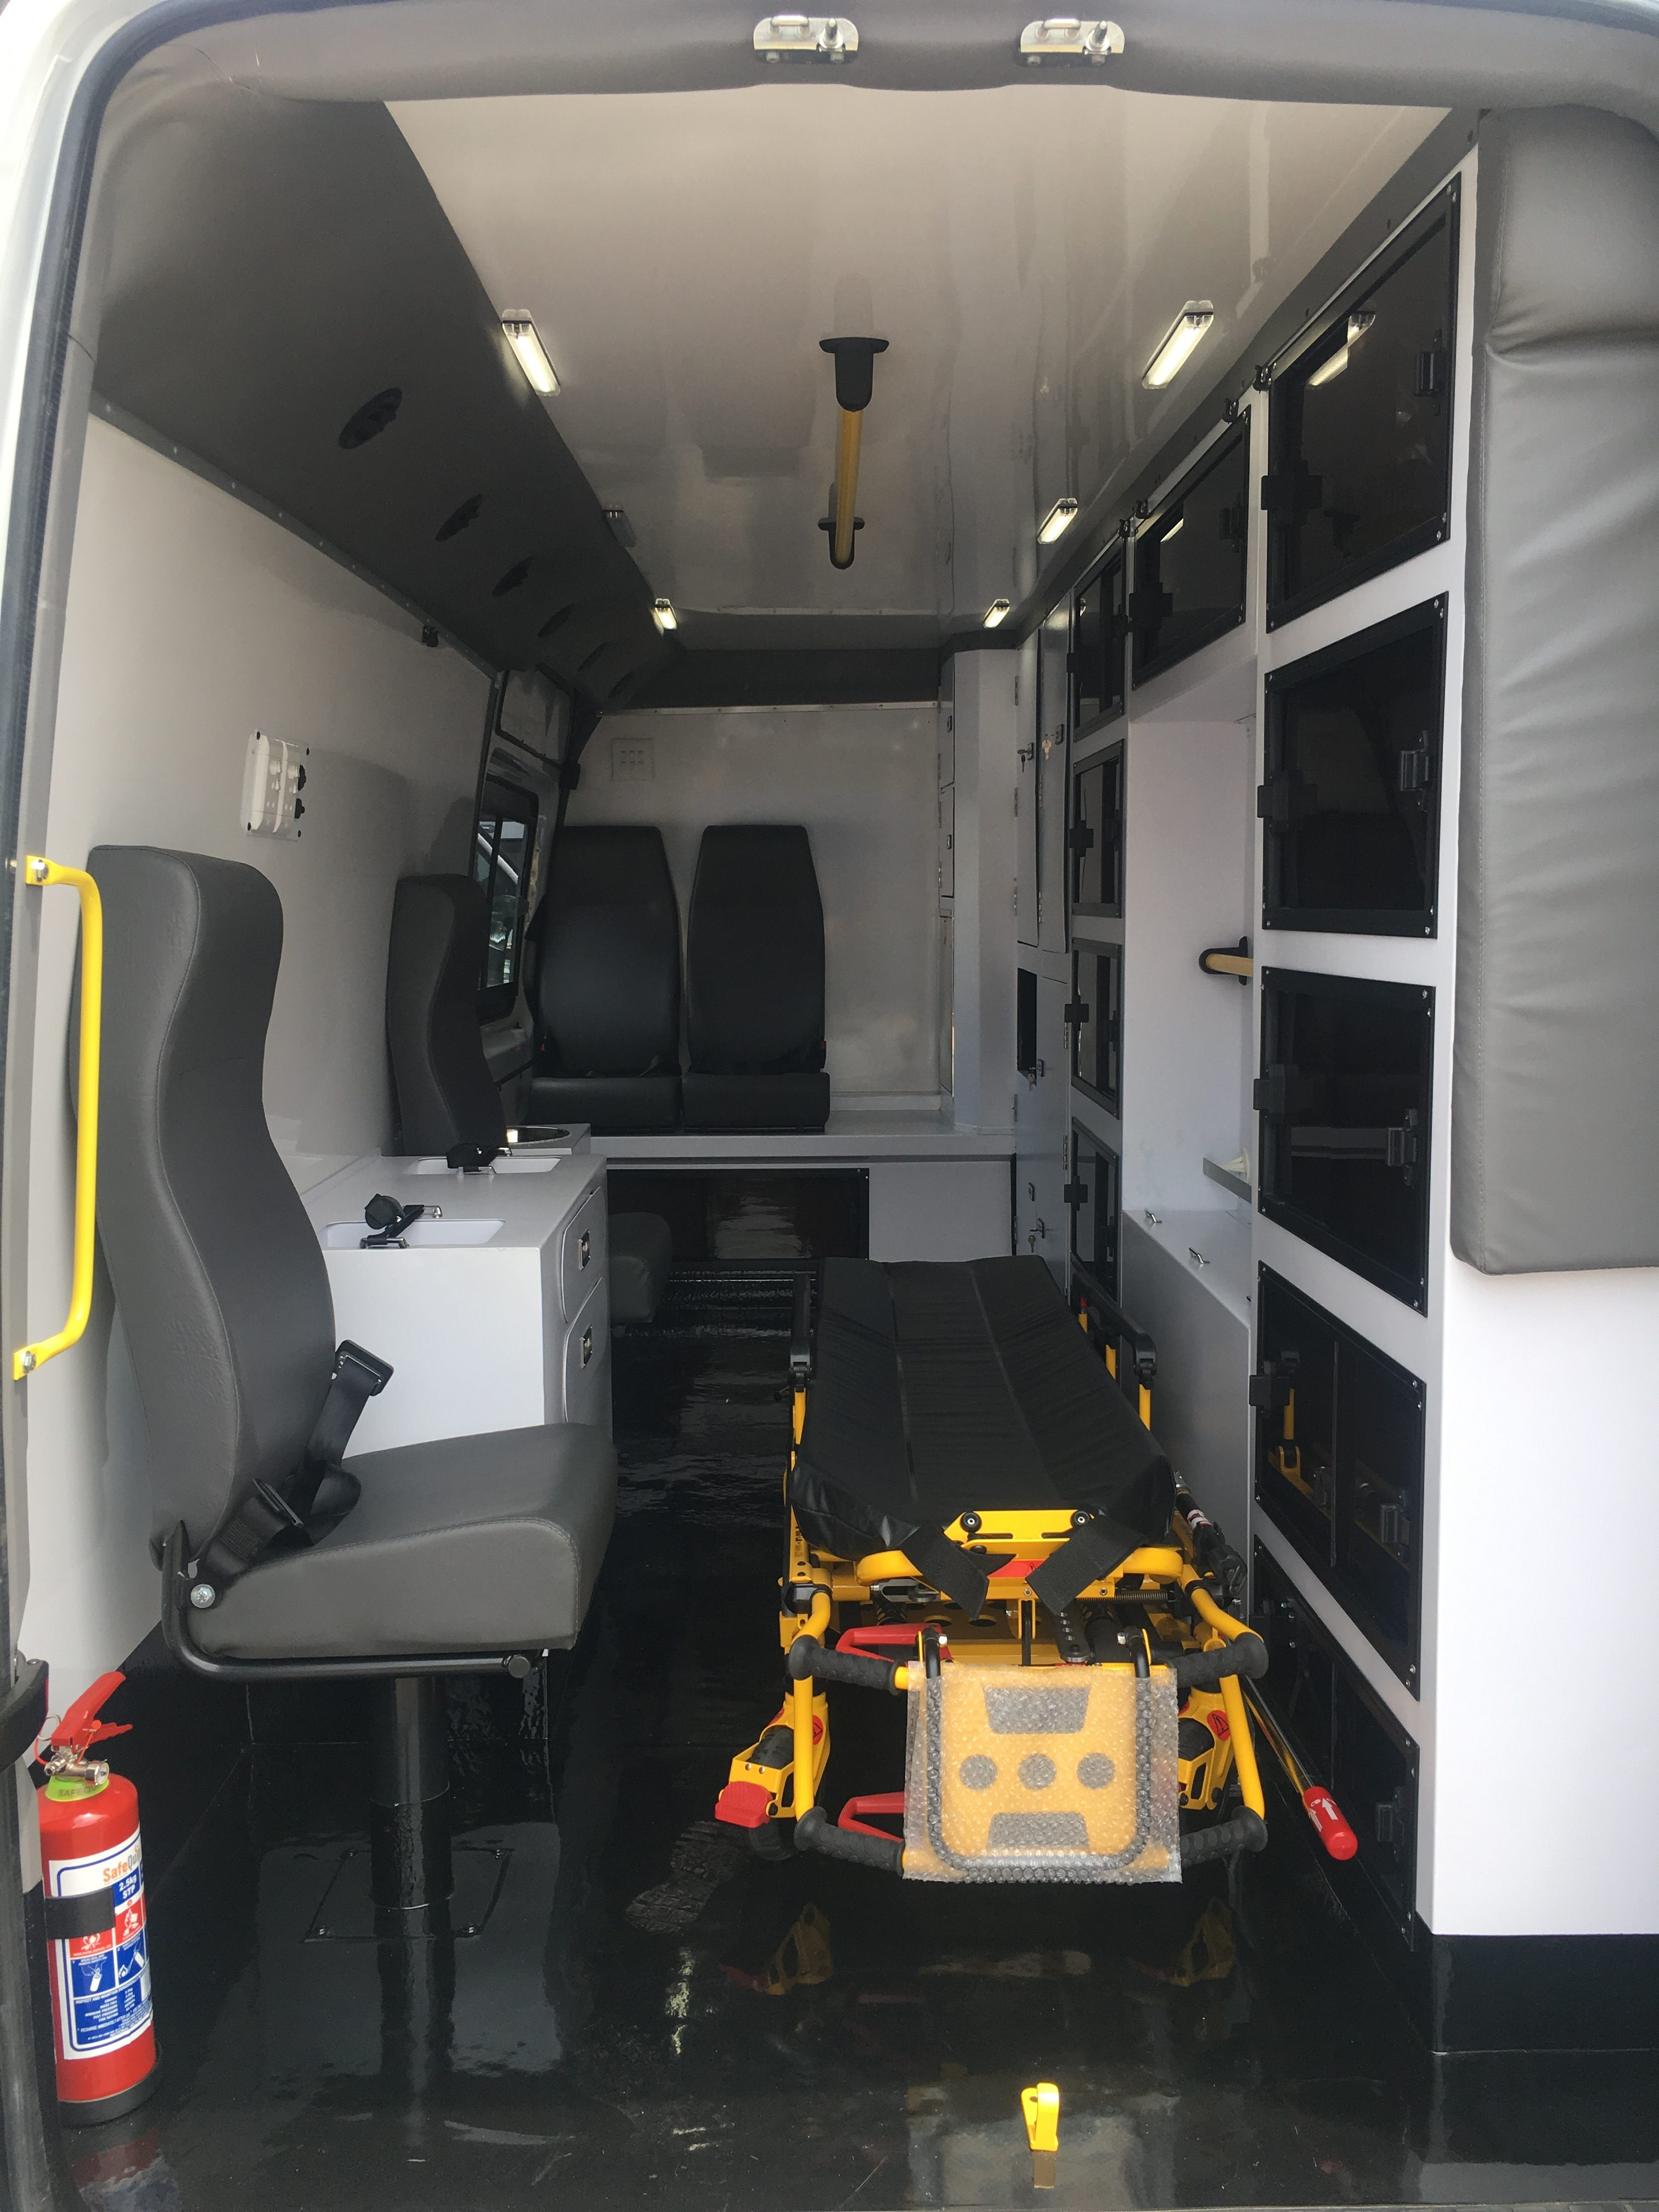 Specialised ICU ambulance on Mercedes Sprinter